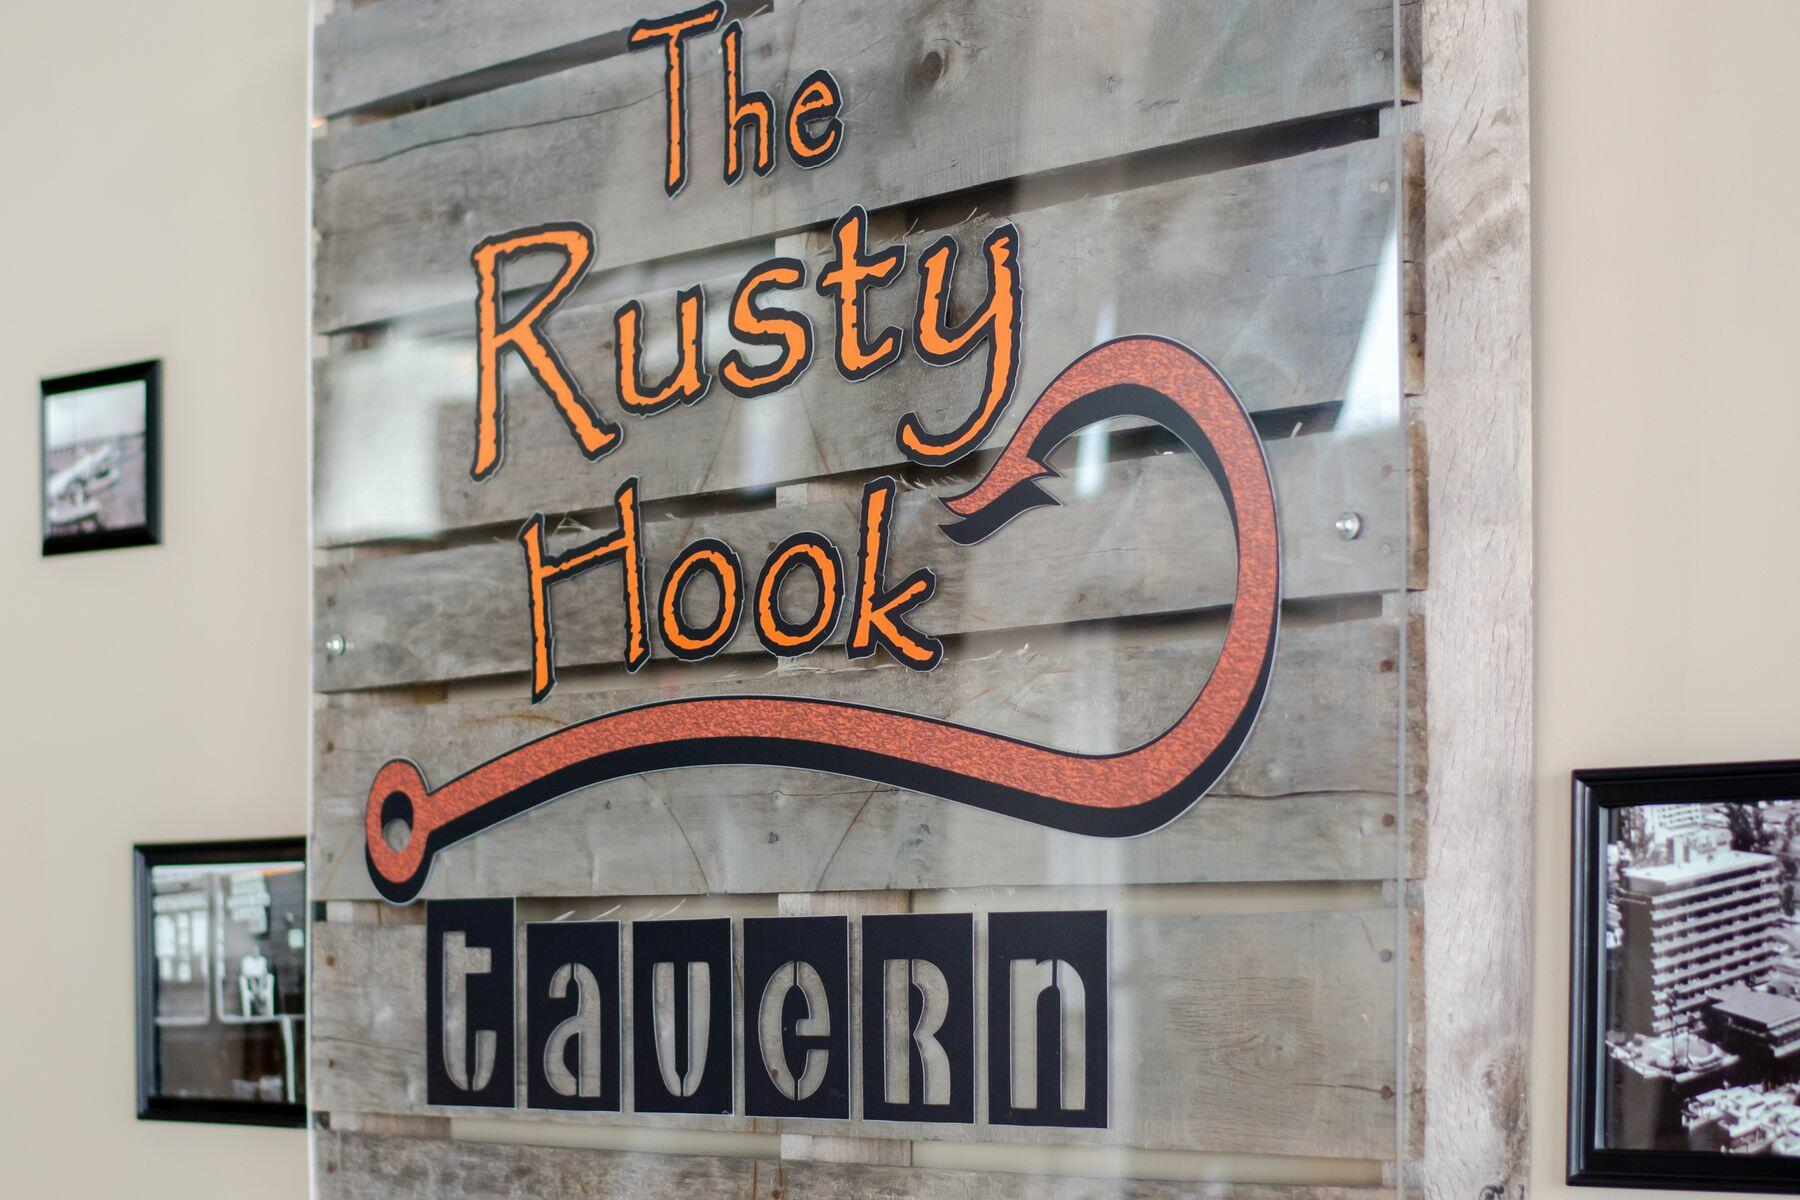 Rusty Hook Tavern Signage